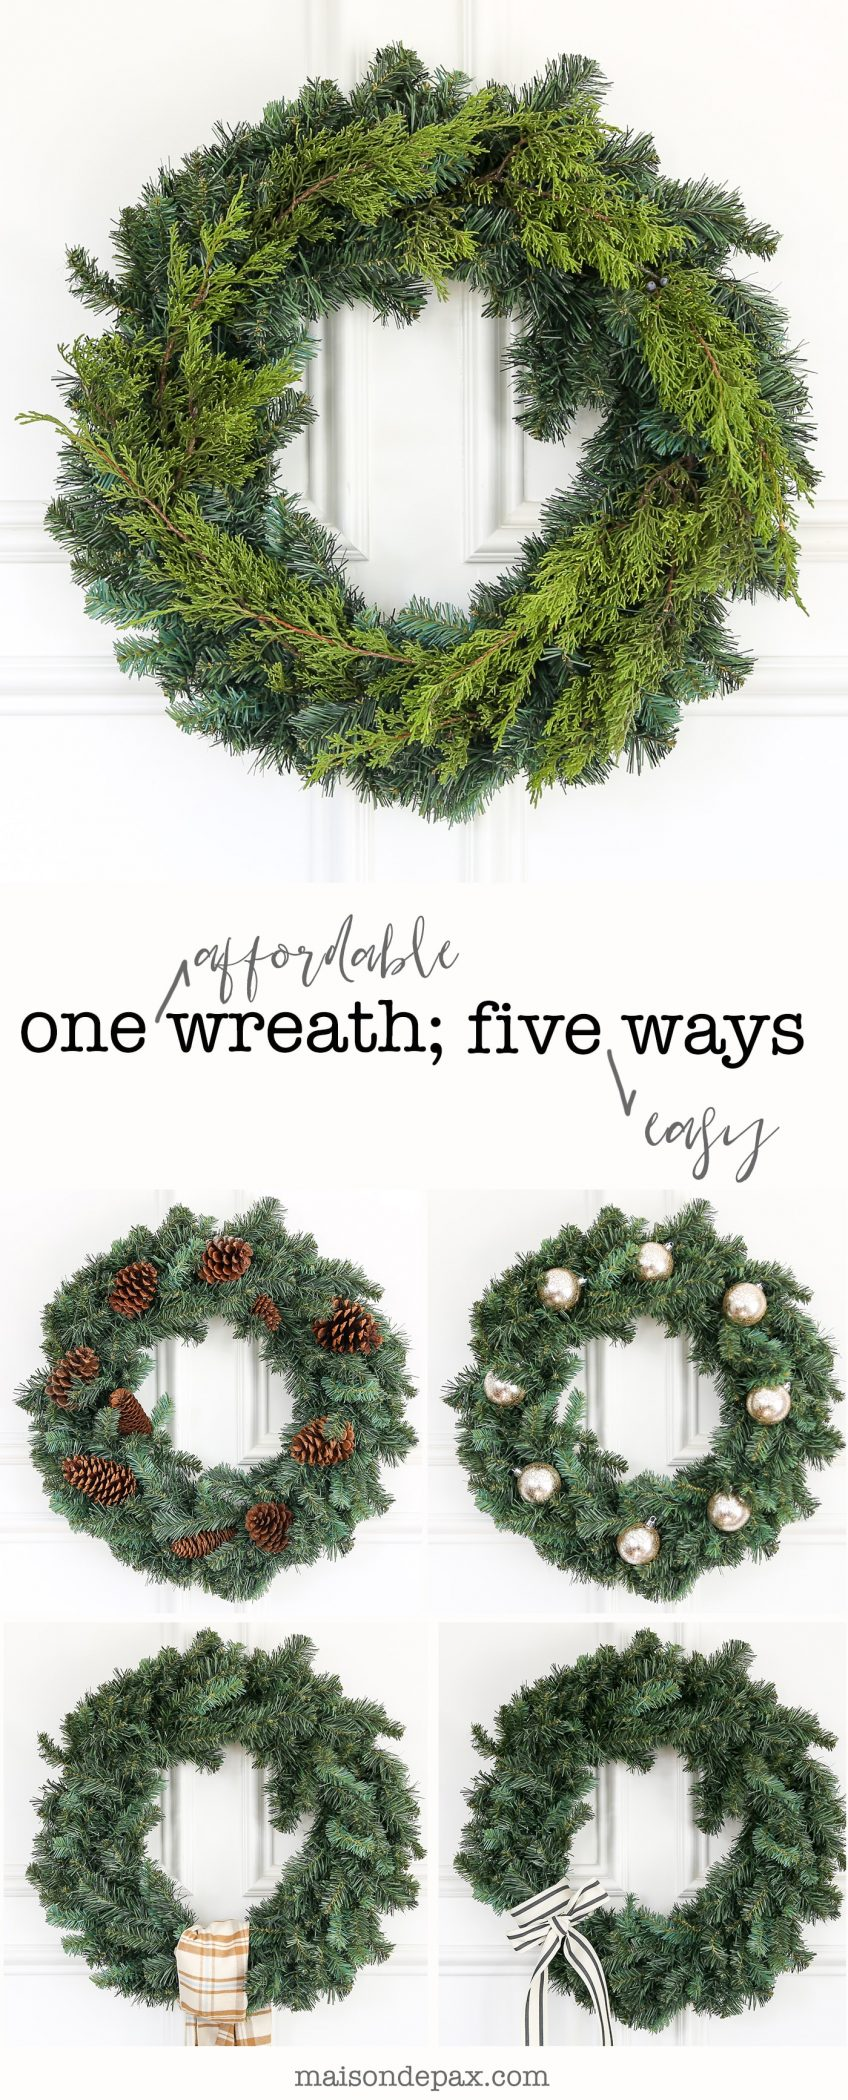 1 Affordable Wreath  5 Easy Ways   Maison de Pax Easy wreath decorating ideas  Find out five easy ways to decorate one  affordable Christmas wreath